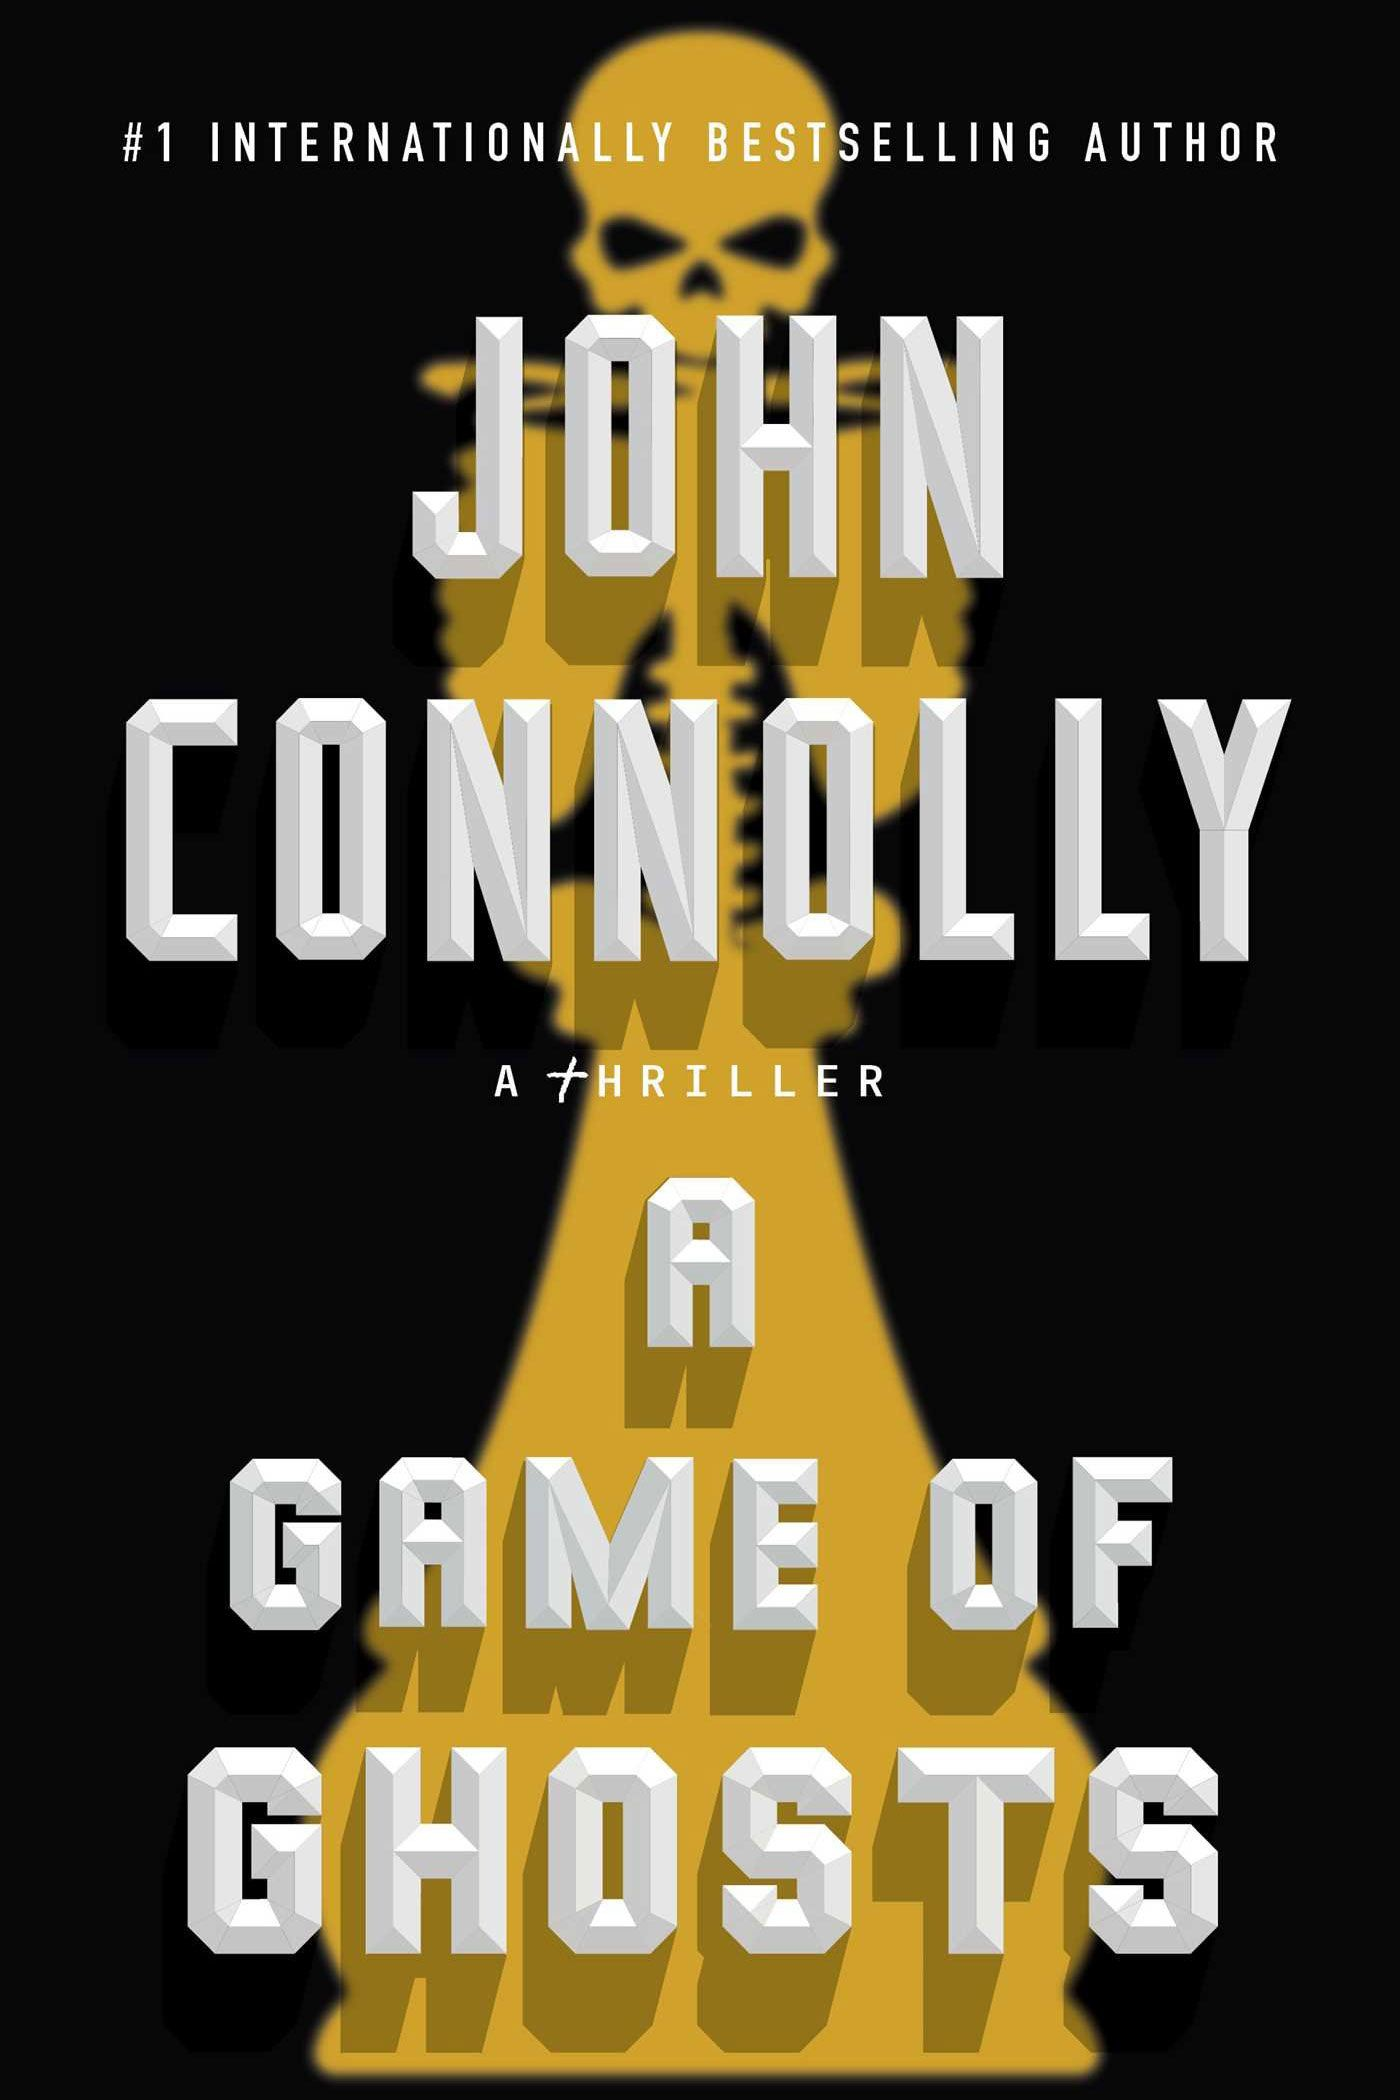 """<p><span>Internationally bestselling author John Connolly delivers an epic supernatural suspense that will forever reset your standards for summer thrillers. From secret realms and horrific homicides to hauntings and criminal empires, there isn't a single dull sentence found in the pages of</span><i data-redactor-tag=""""i"""">A Game of Ghosts</i><span>– and you'll love it.</span></p><p><span><strong data-verified=""""redactor"""" data-redactor-tag=""""strong""""><a href=""""https://www.amazon.com/Game-Ghosts-Charlie-Parker-Thriller/dp/1501171895/?tag=redbook_auto-append-20"""" target=""""_blank"""" class=""""slide-buy--button"""" data-tracking-id=""""recirc-text-link"""">BUY NOW</a></strong><br></span></p><p><span><strong data-verified=""""redactor"""" data-redactor-tag=""""strong"""">RELATED:<a href=""""http://www.redbookmag.com/life/g230/summer-beach-reads/"""" target=""""_blank"""" data-tracking-id=""""recirc-text-link"""">20 Booksto Take to the Beach This Summer</a><span class=""""redactor-invisible-space""""><a href=""""http://www.redbookmag.com/life/g230/summer-beach-reads/""""></a></span></strong><br></span></p>"""